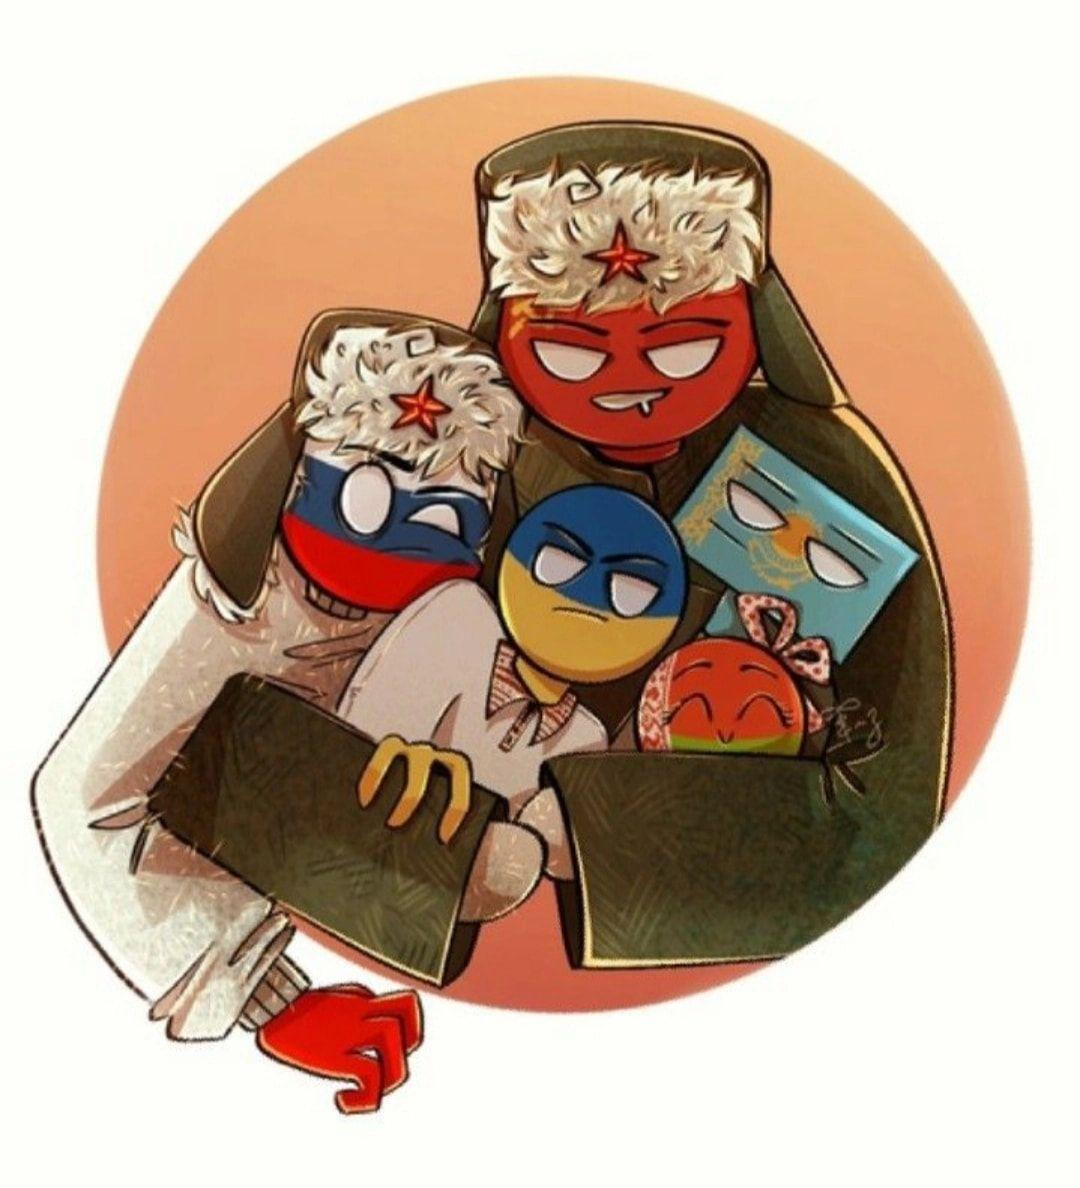 CountryHumans Russia Wallpapers - Wallpaper Cave